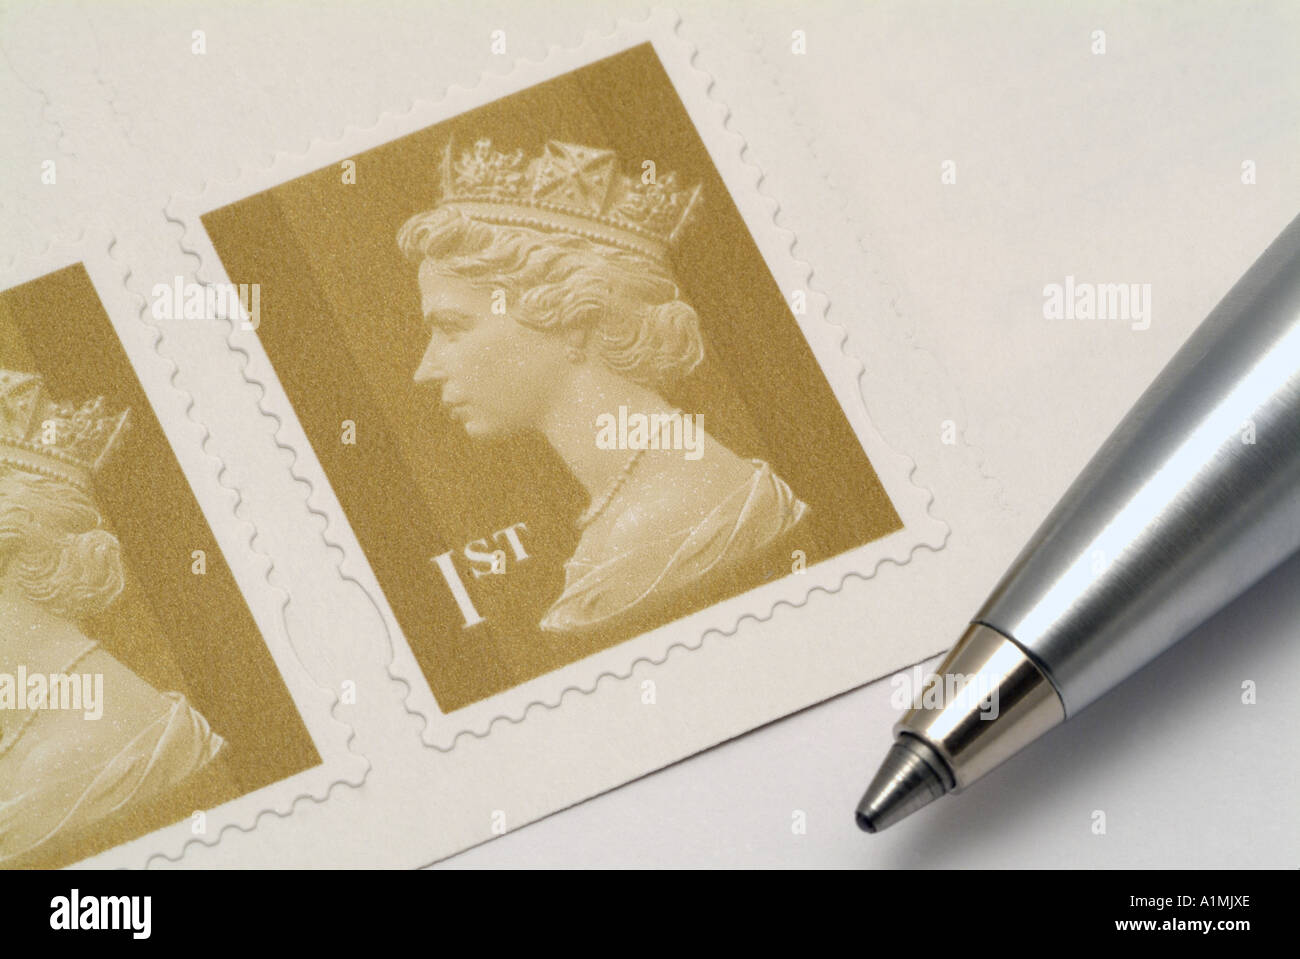 United Kingdom First Class Postage Stamp and Pen - Stock Image